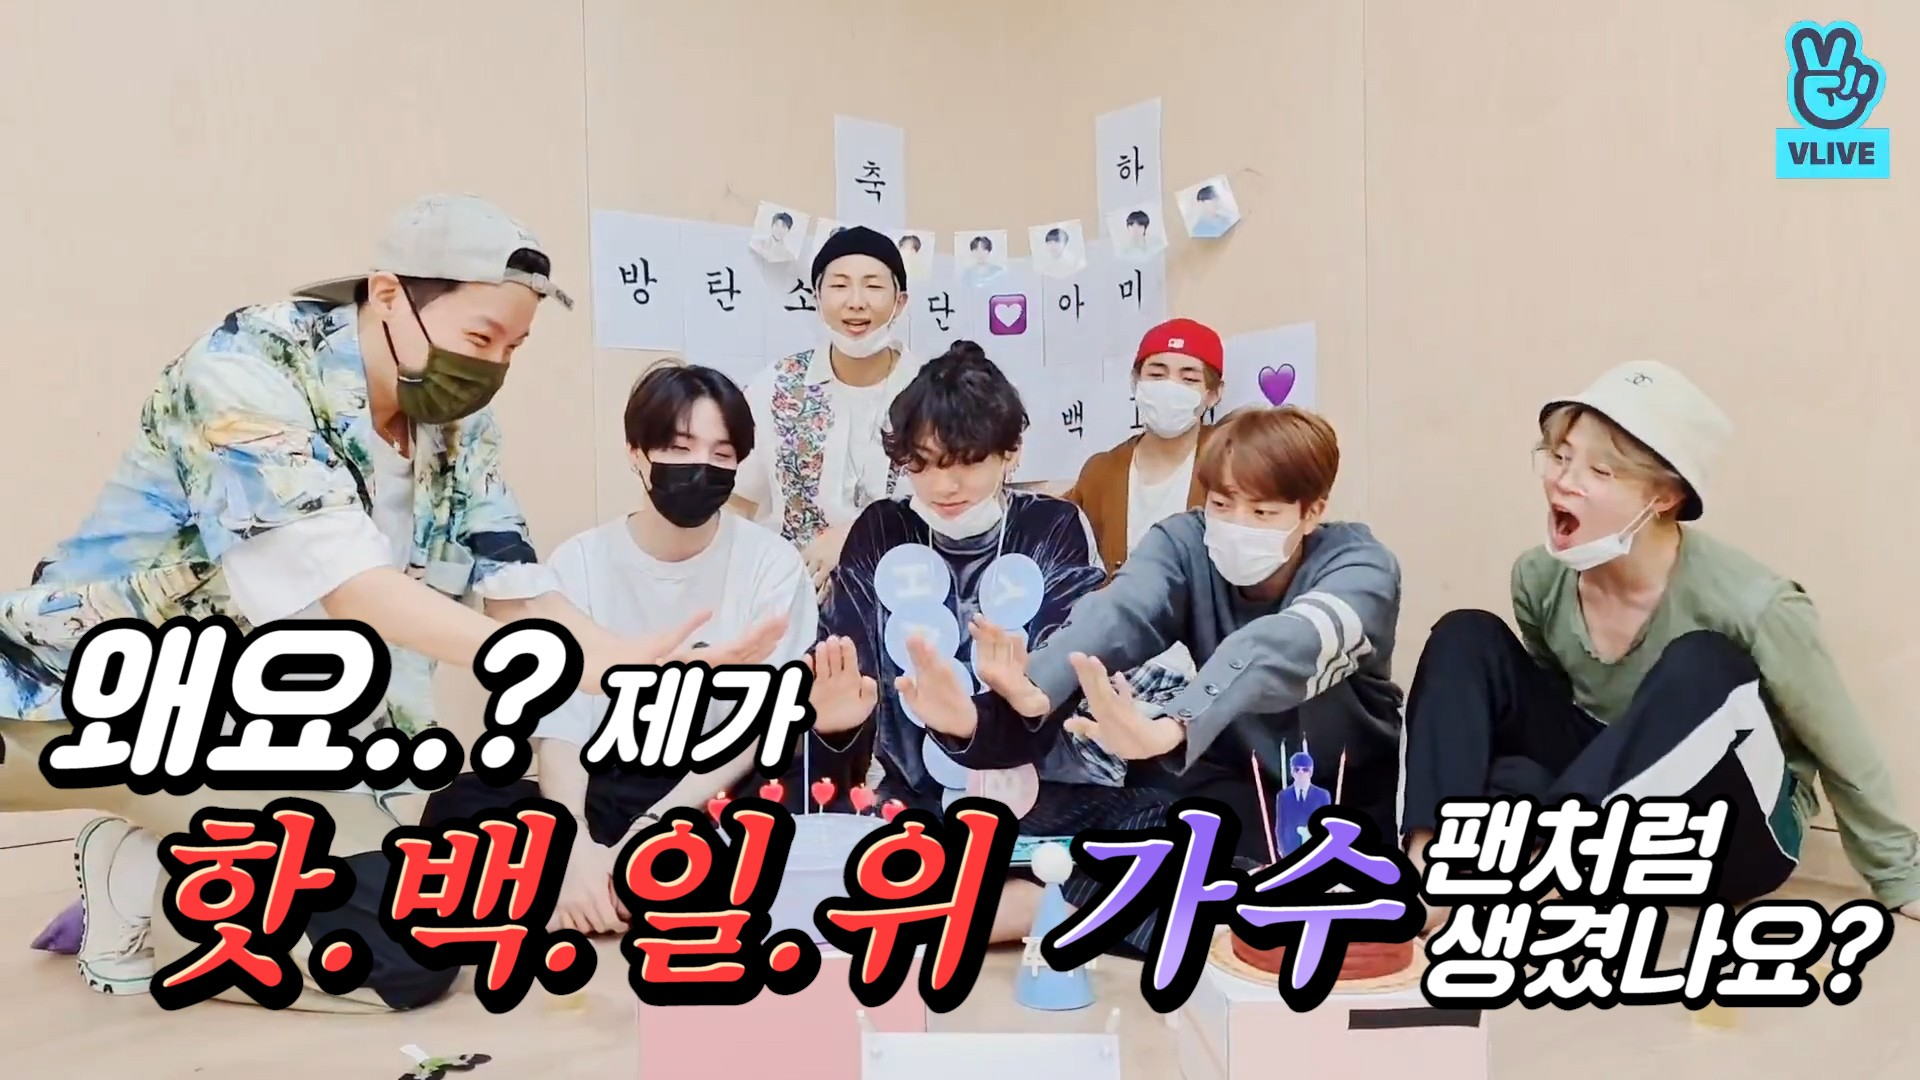 [BTS] 🎉왜요..? 제가 핫.백.1.위 가수 팬처럼 생겼나요..?🏆 (BTS's thankful messages for ARMY)